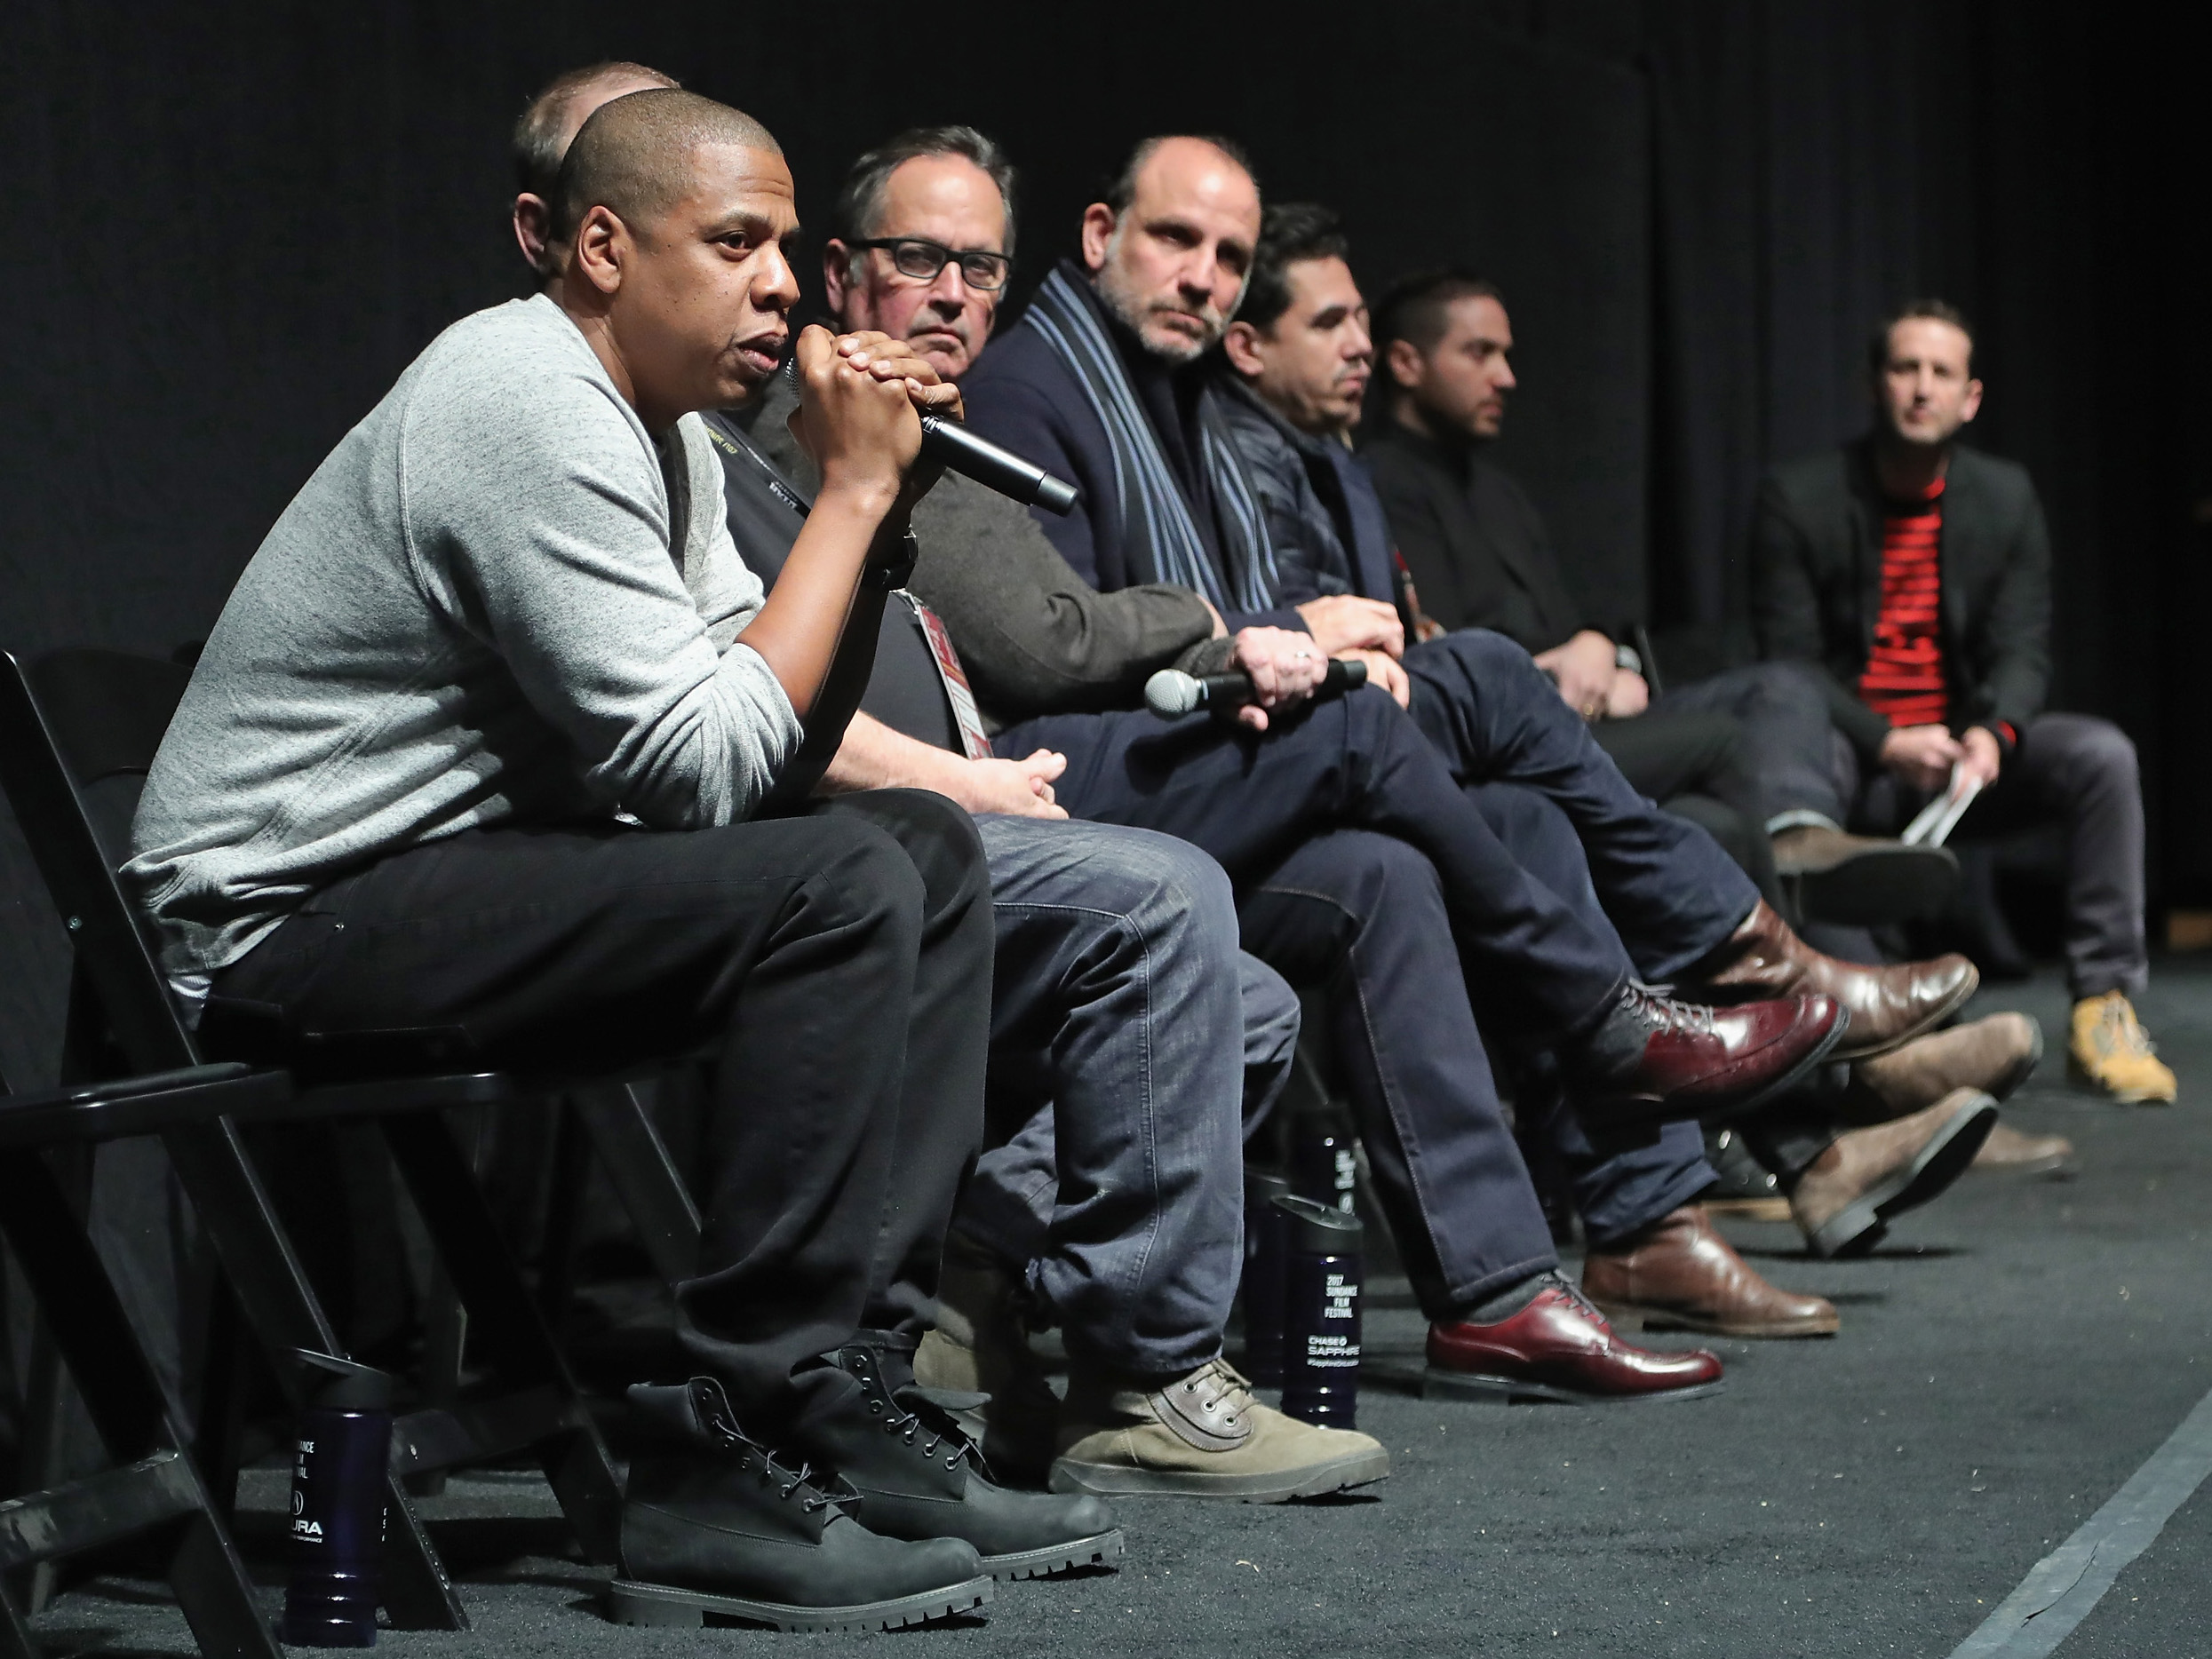 Jay Z speaks during a Q&A following the TIME: The Kalief Browder Story Sundance World Premiere, on Jan. 25, 2017 in Park City, Utah.